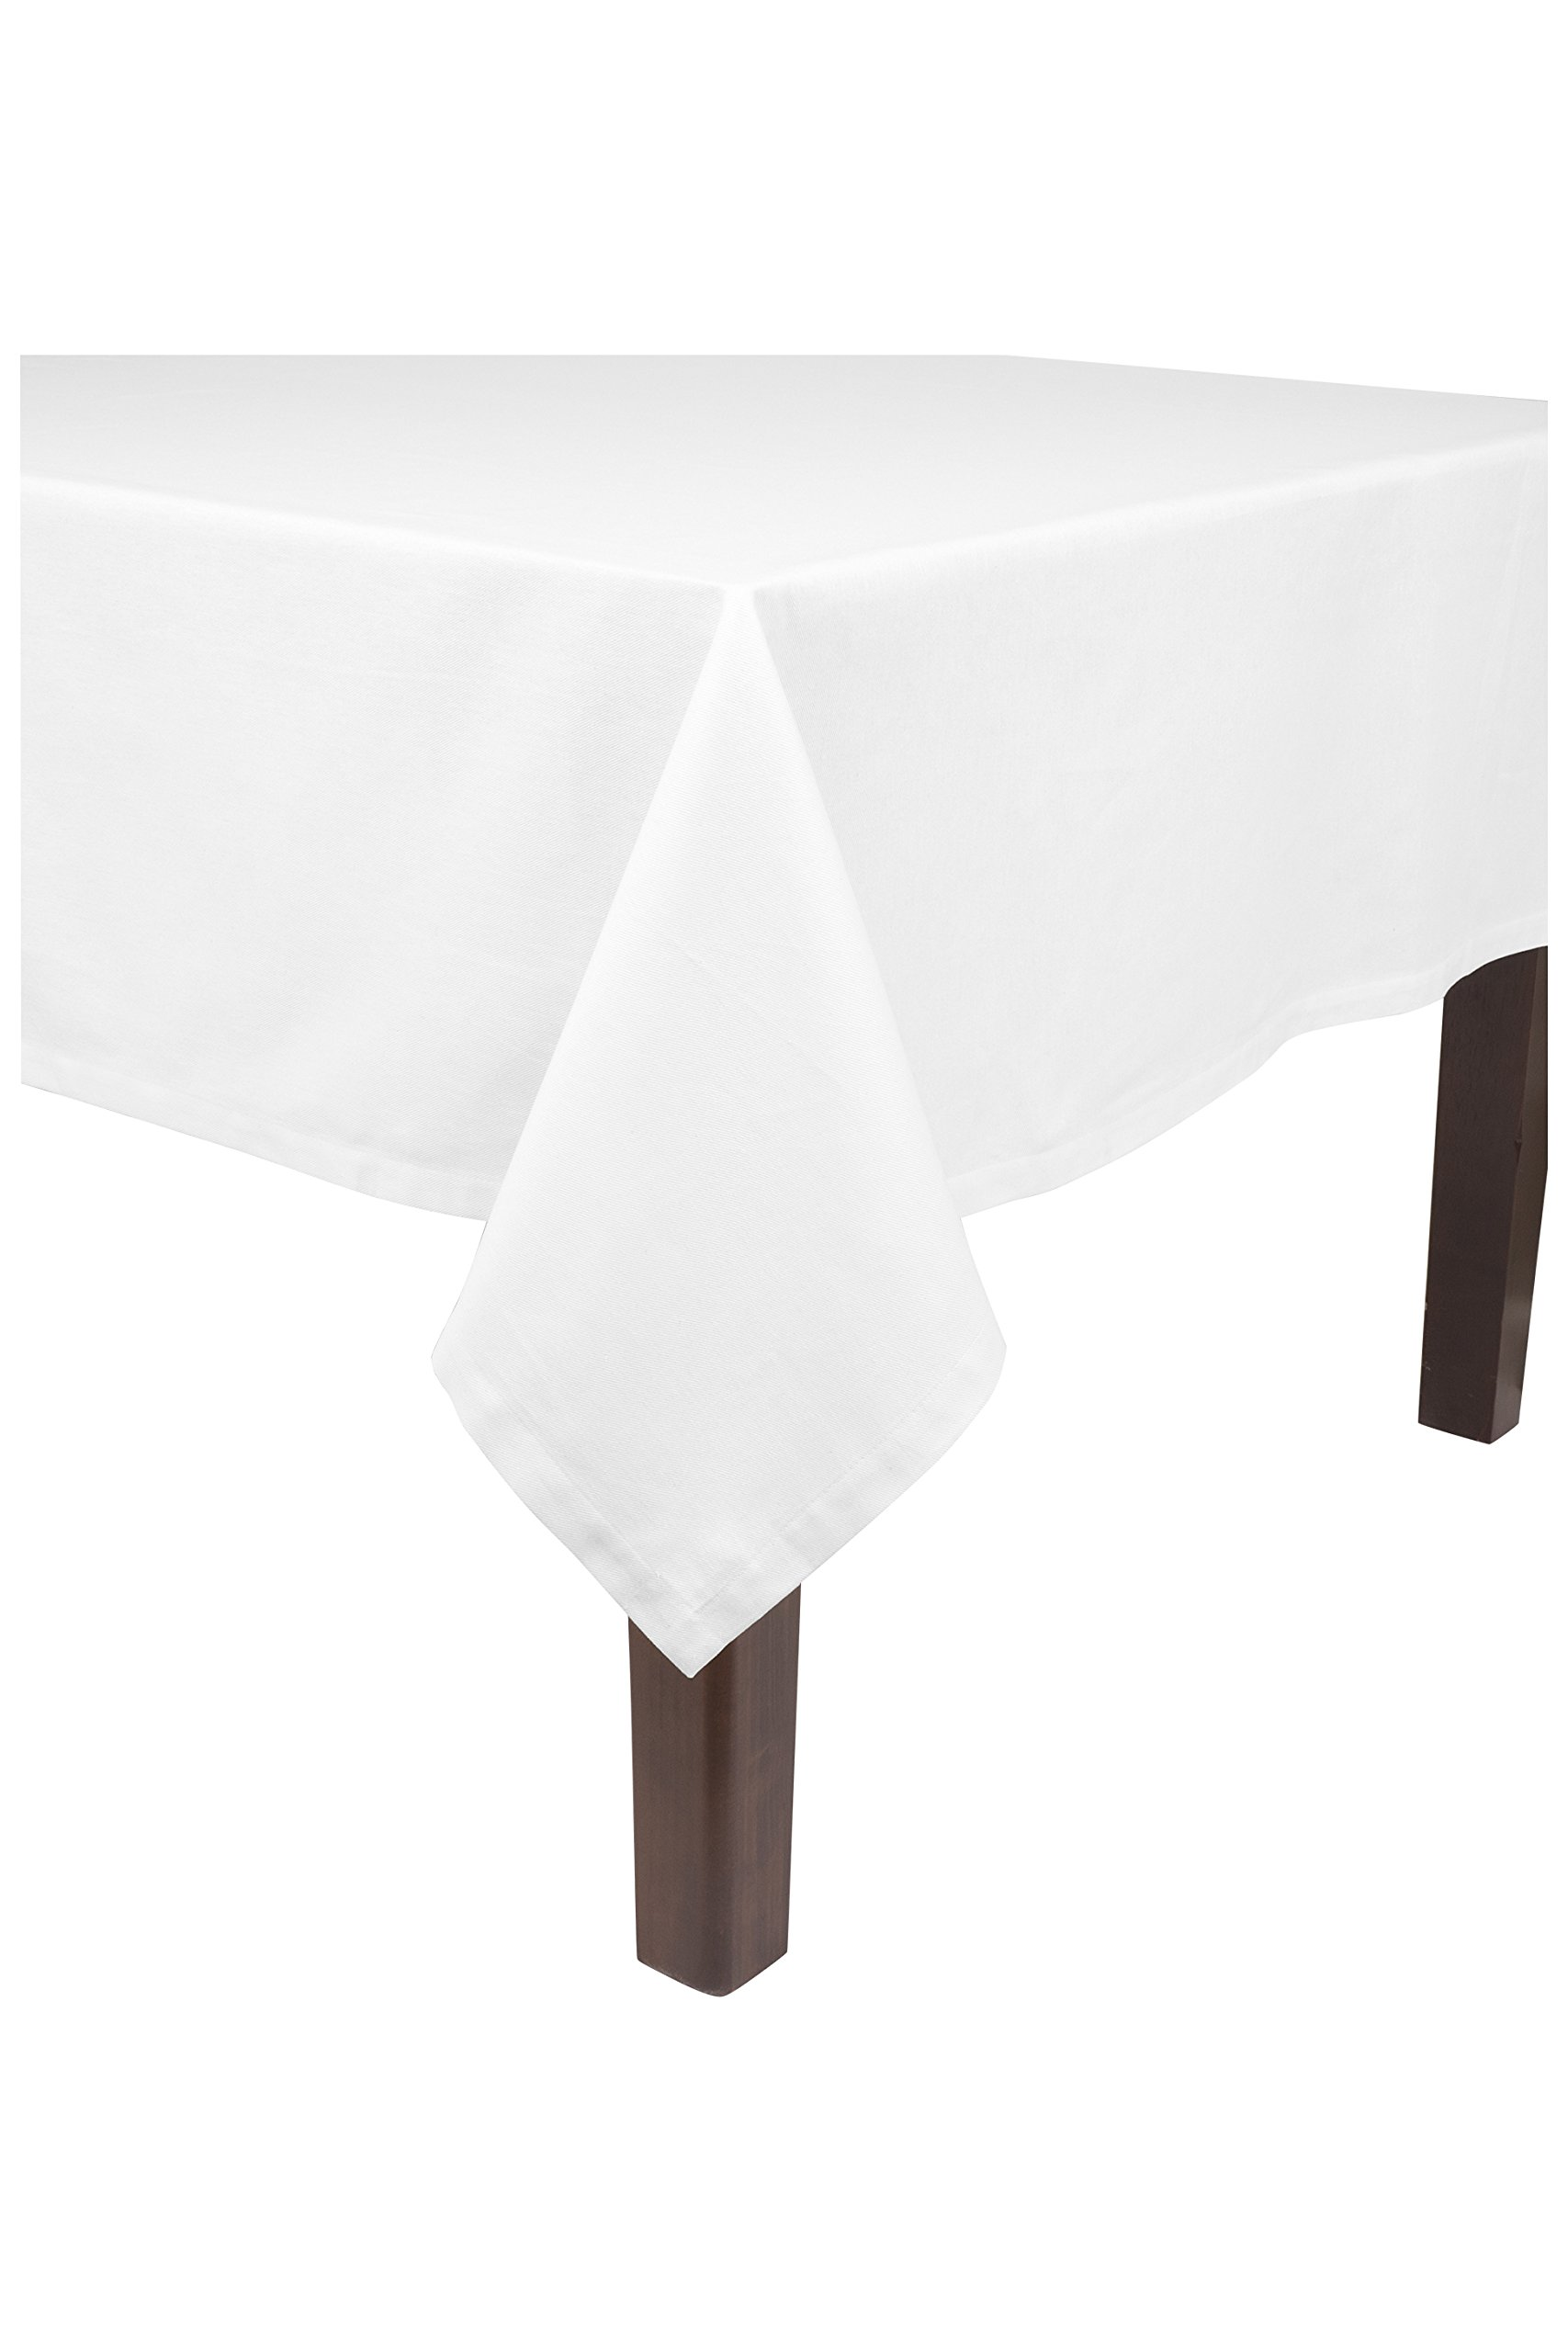 KAF Home Banquet Tablecloth in White, 90'' by 144'', 100% Cotton, Machine Washable